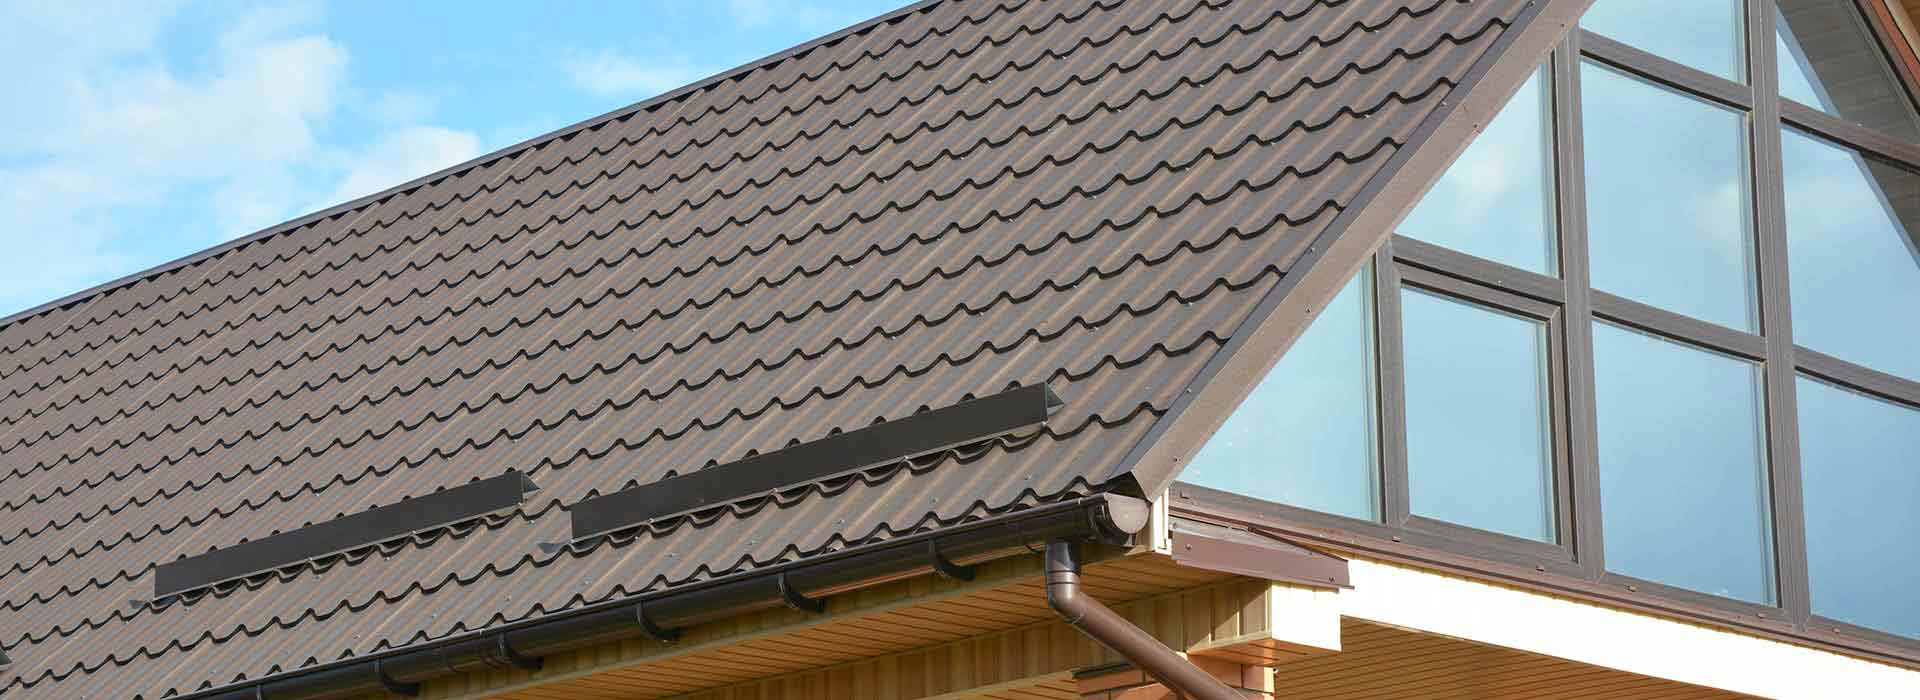 Your Roofing Specialists